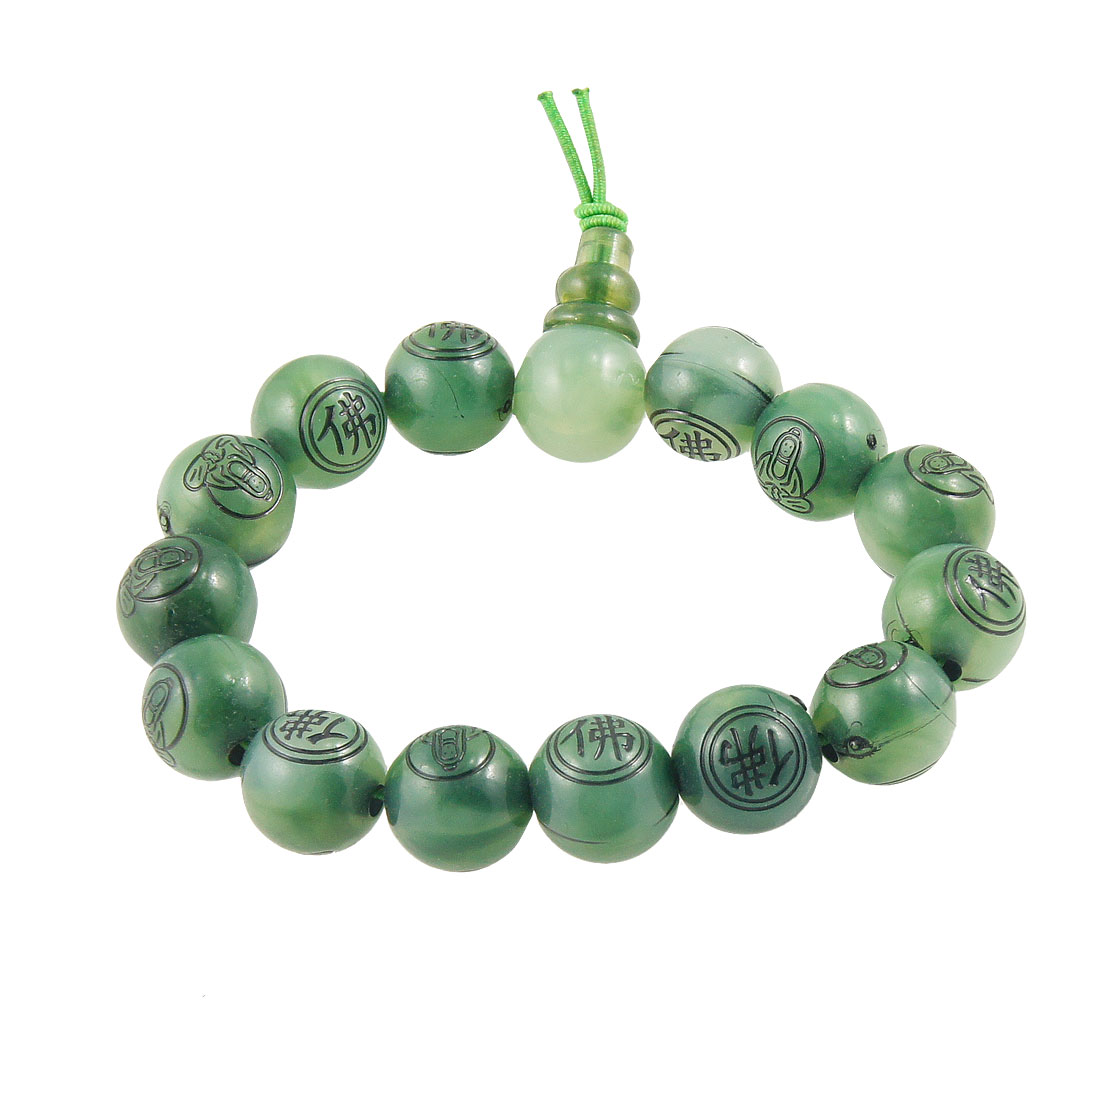 Buddha Character Print Green Round Beads Stretchy Bracelet for Ladies